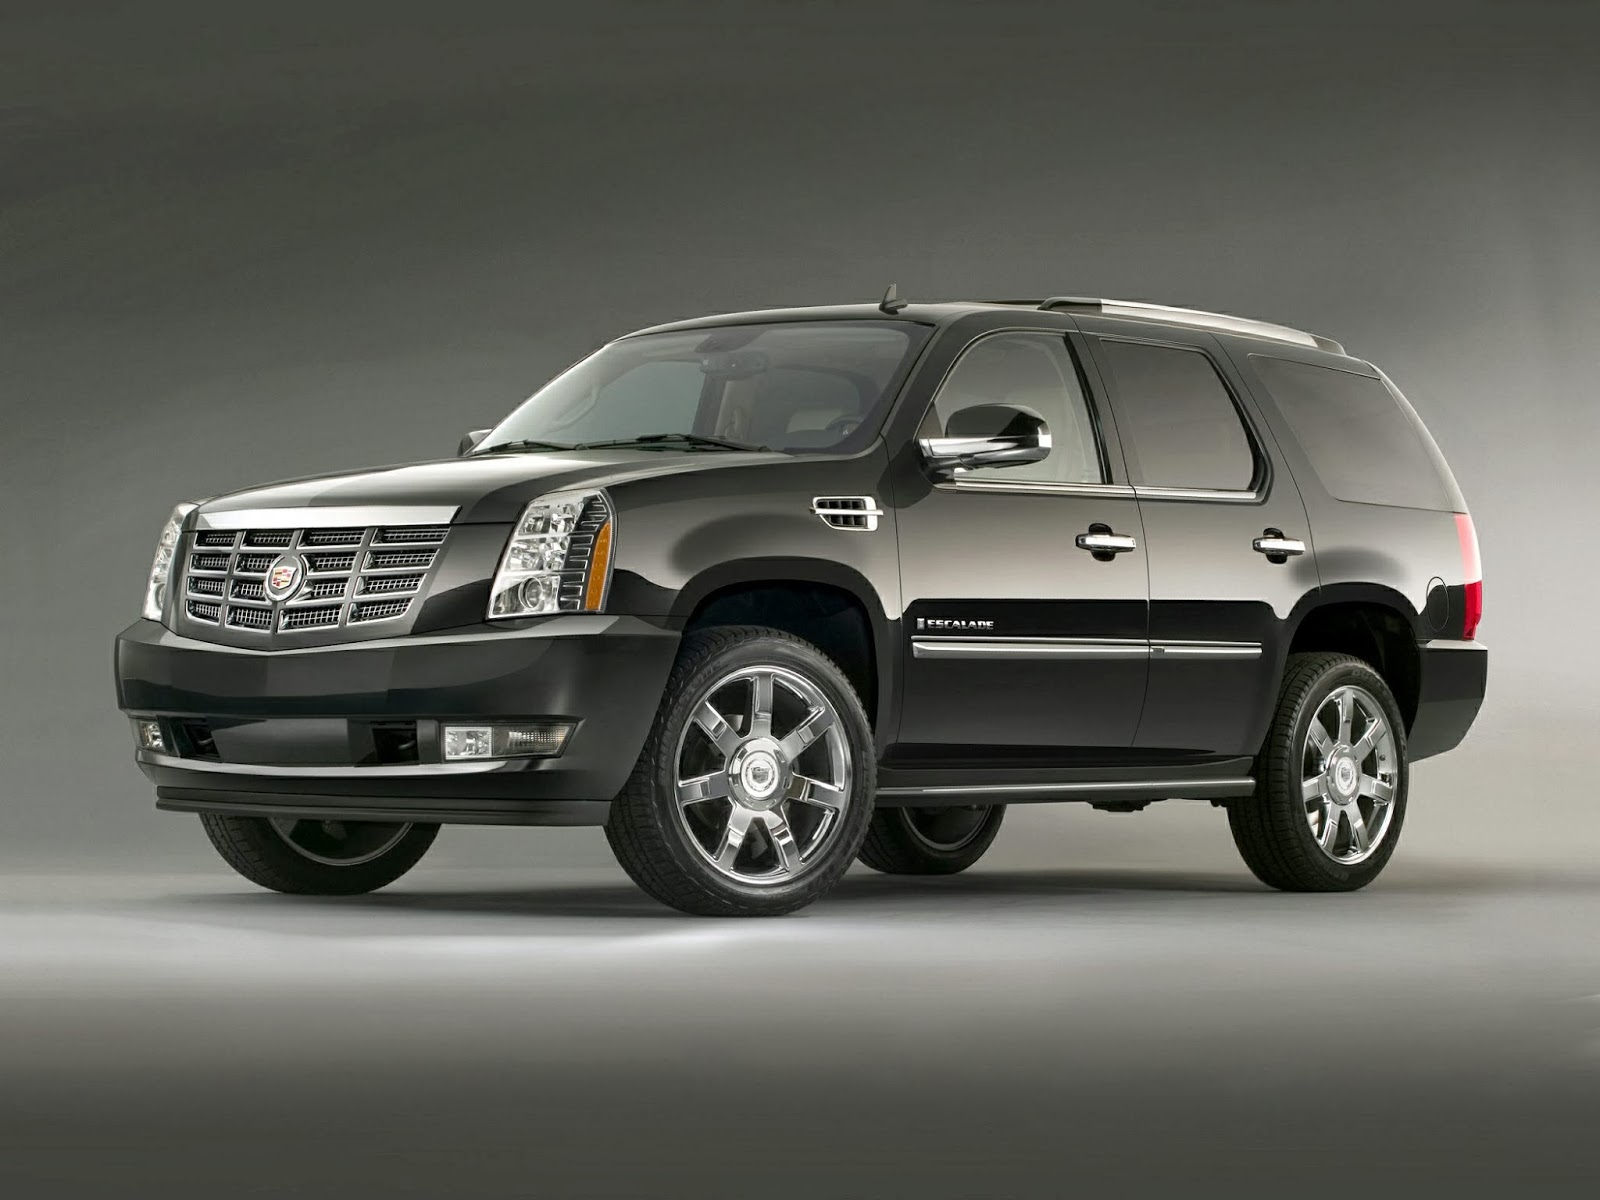 2015 cadillac escalade luxury suv and price auto review 2014. Black Bedroom Furniture Sets. Home Design Ideas